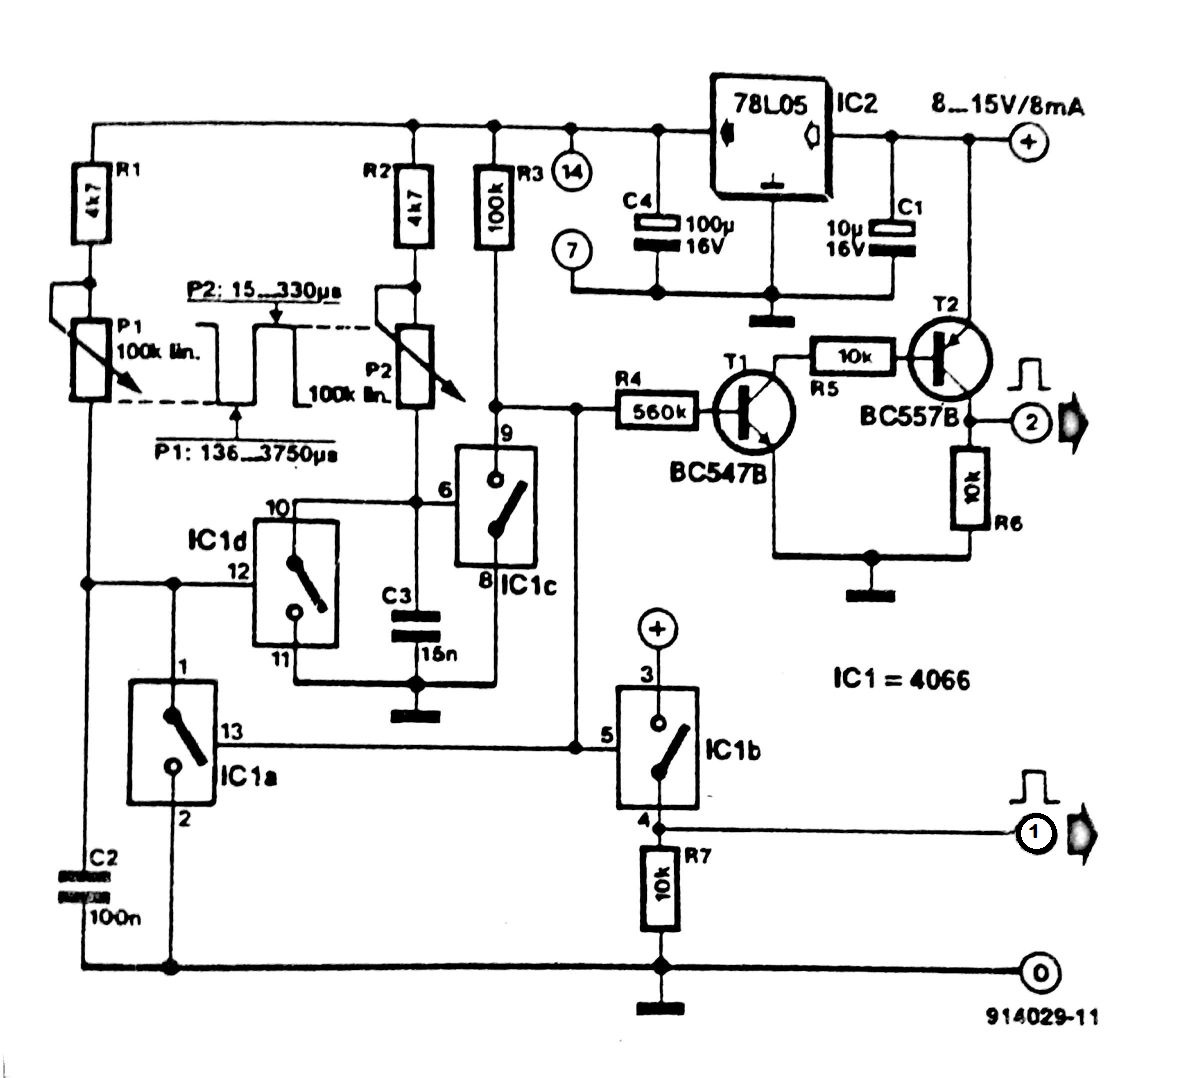 Pulse Generator with one 4066 Circuit Diagram generac panel ram wiring diagrams bolens wiring diagram, sears wiring diagram for little giant pump at readyjetset.co